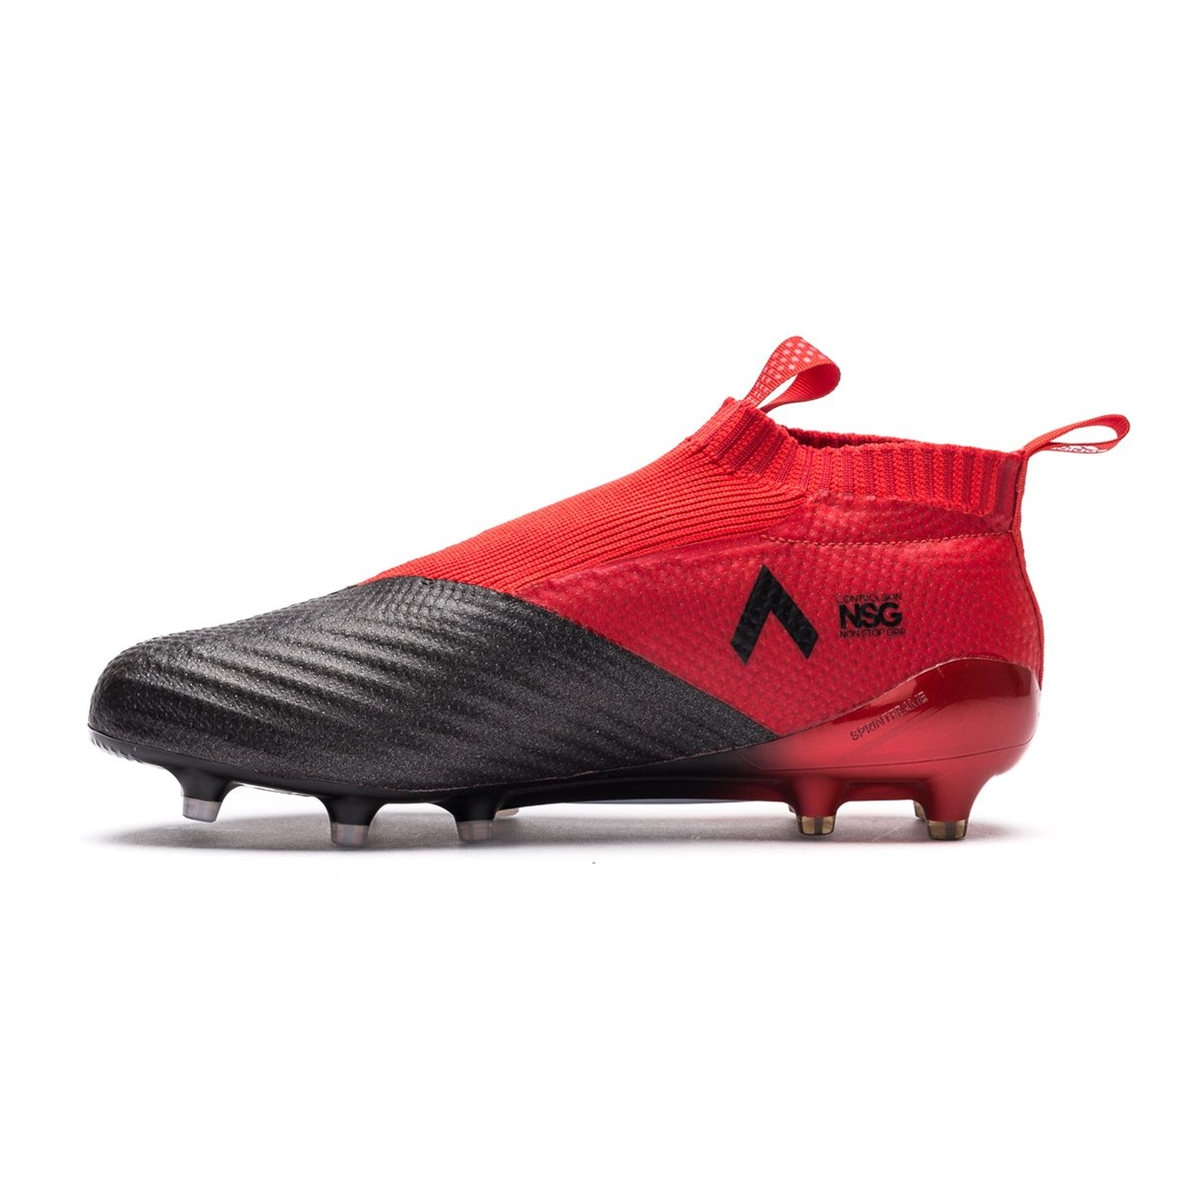 online store dae67 f6000 Adidas ACE 17+ PURECONTROL FG Soccer Cleats (Red White Black)